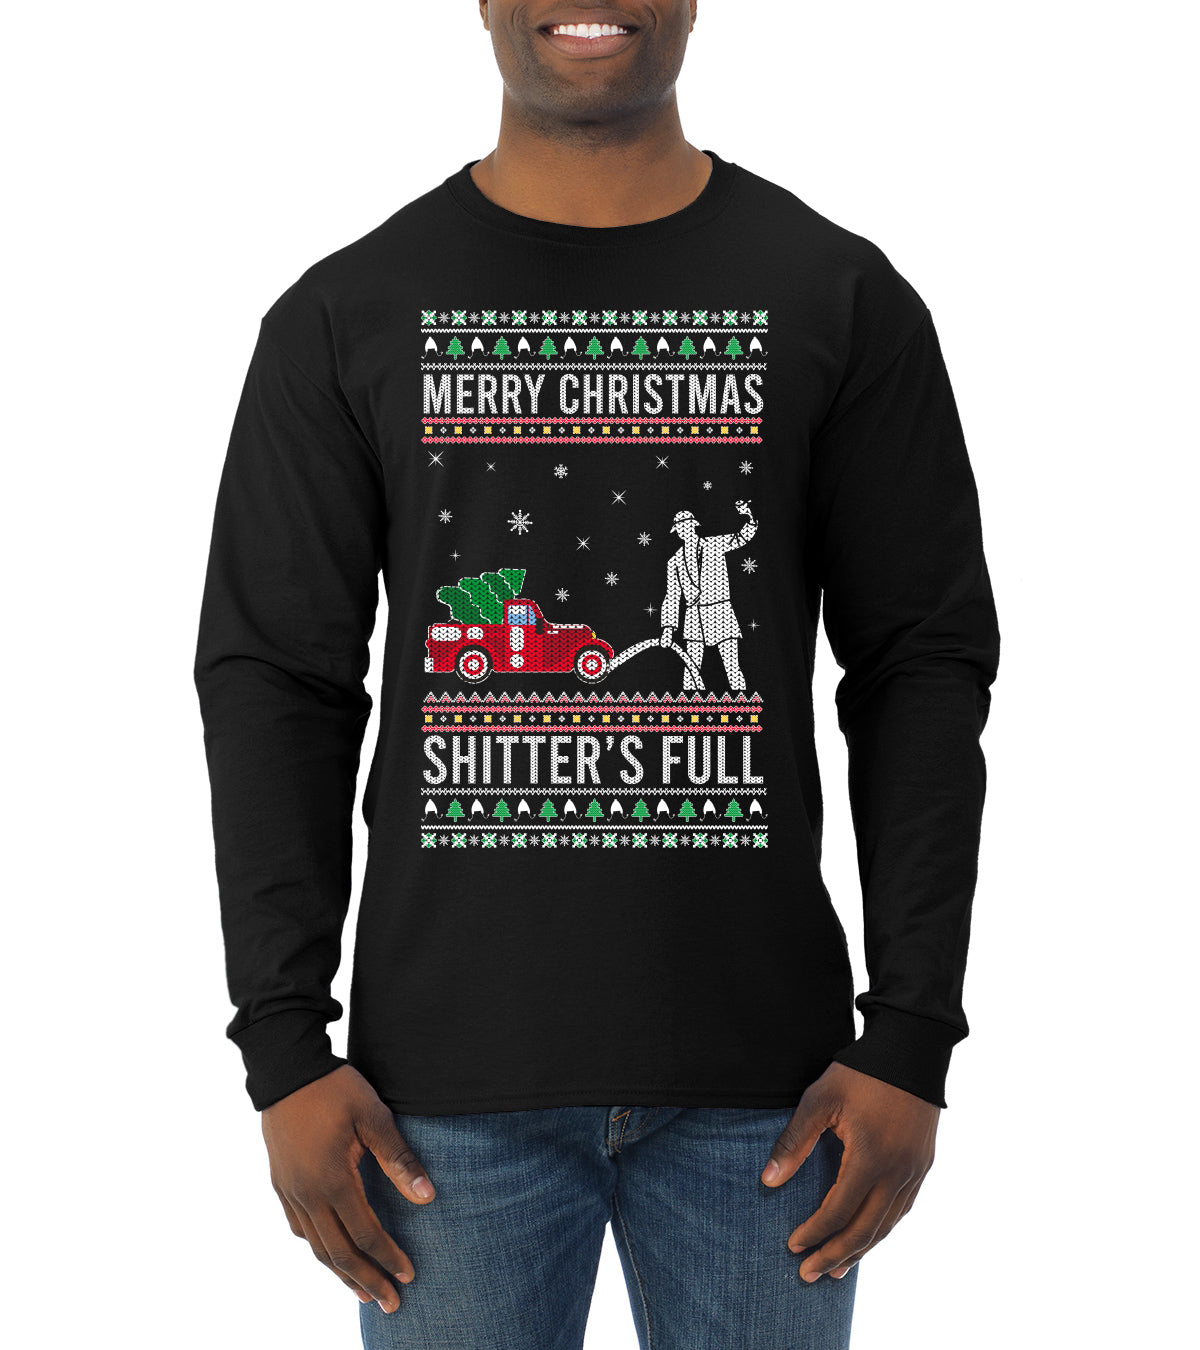 Merry Christmas Shitter's Full Christmas Vacation Ugly Christmas Sweater Mens Long Sleeve Shirt